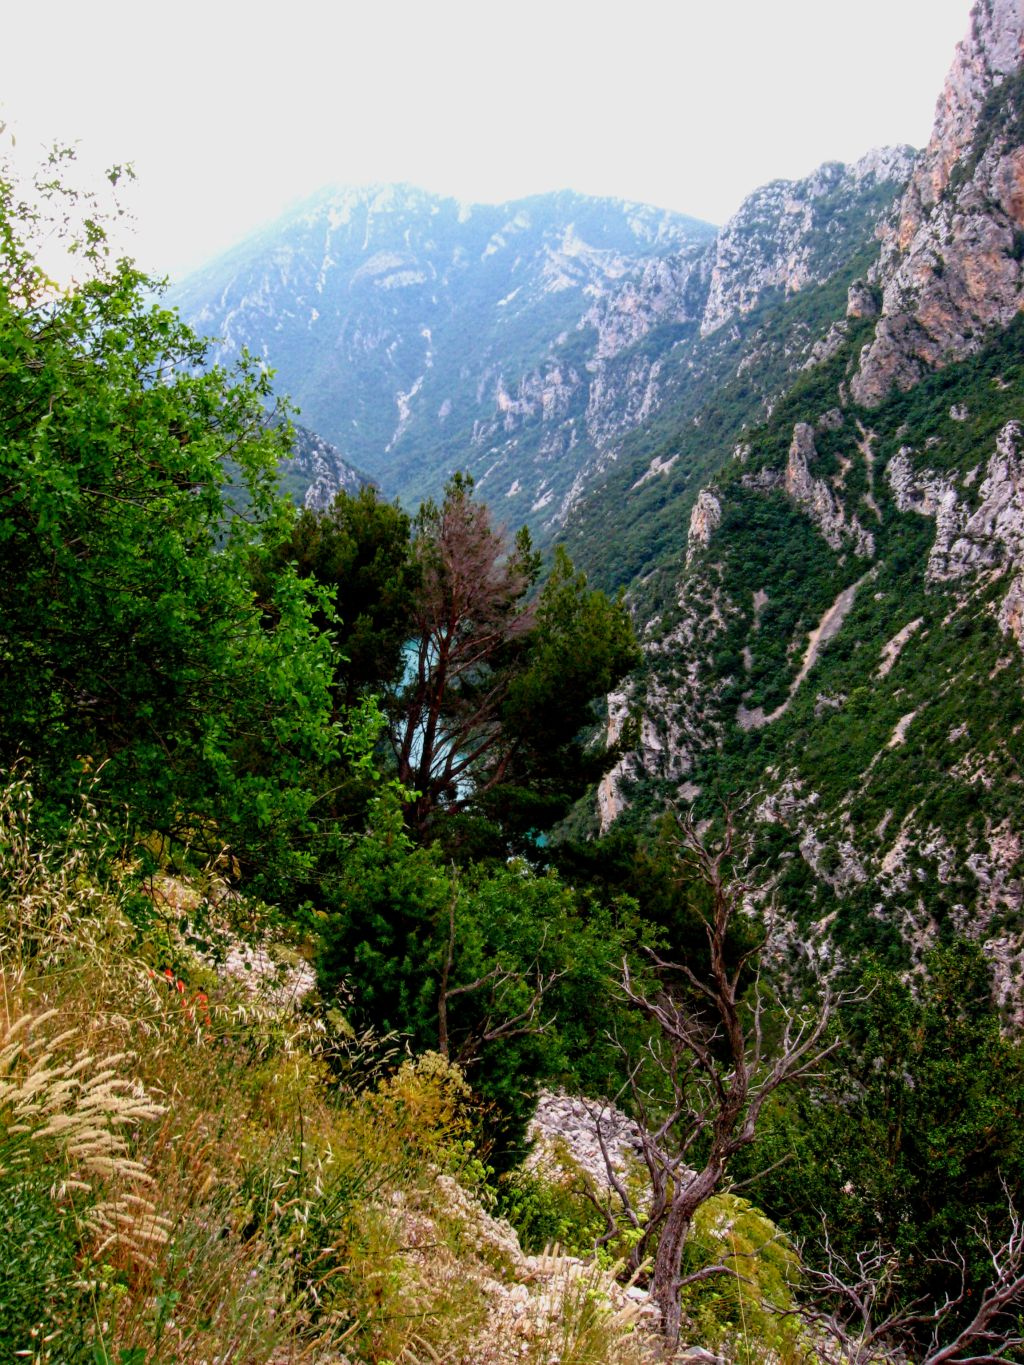 Sentier Martel, Martel Trail, Gorges du Verdon, France, Verdon River, canyon, white rocks, hifh mountains